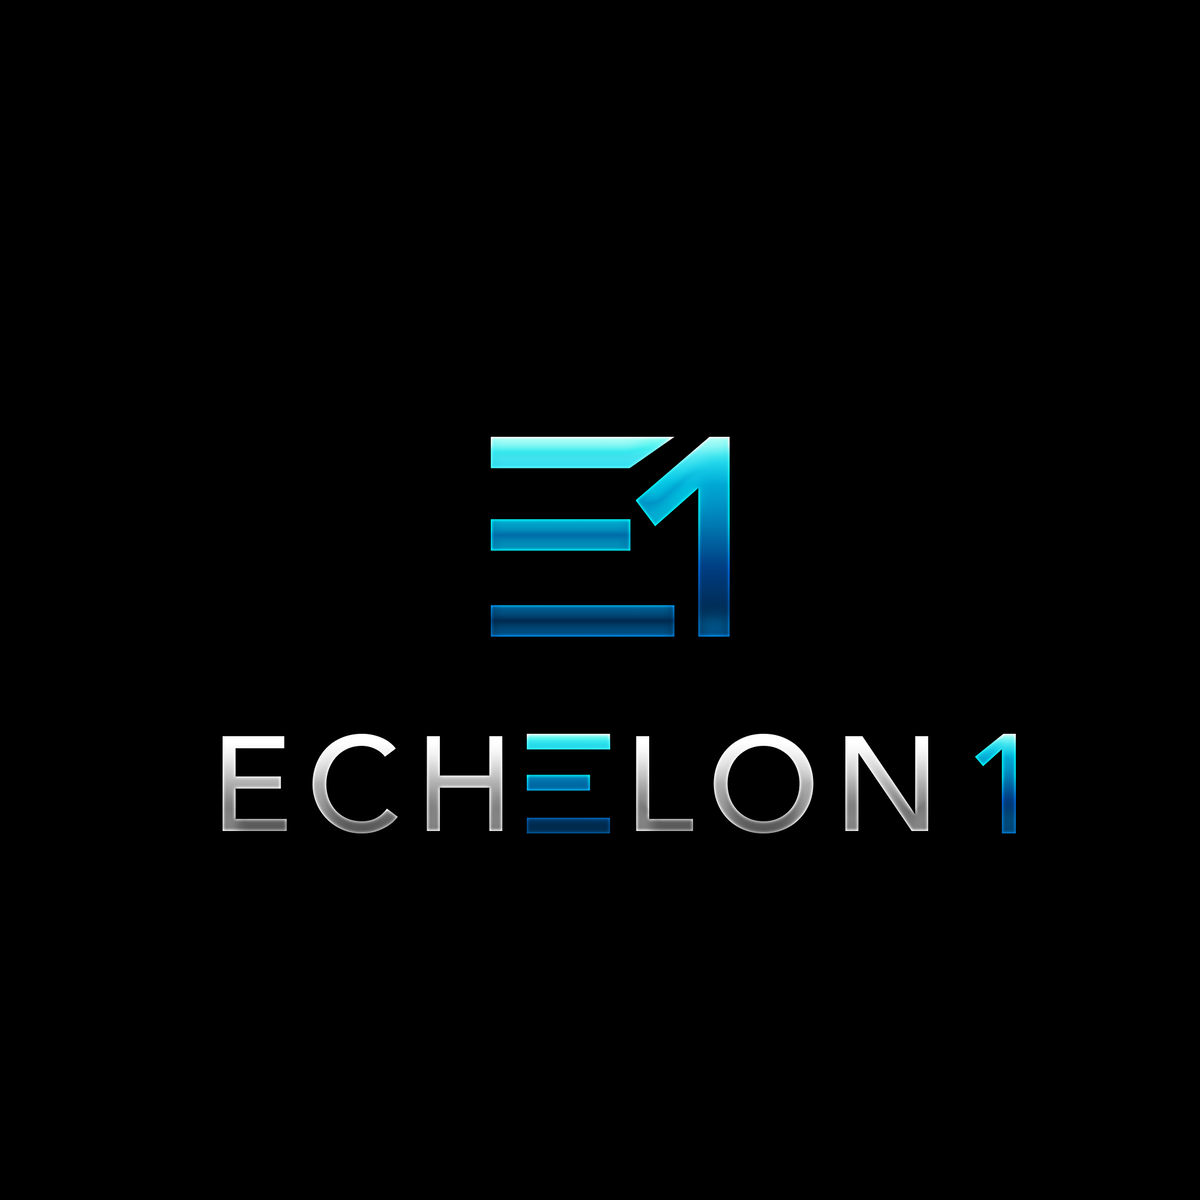 Echelon 1: Design a strong and powerful brand for an online stocks and crypto trading community